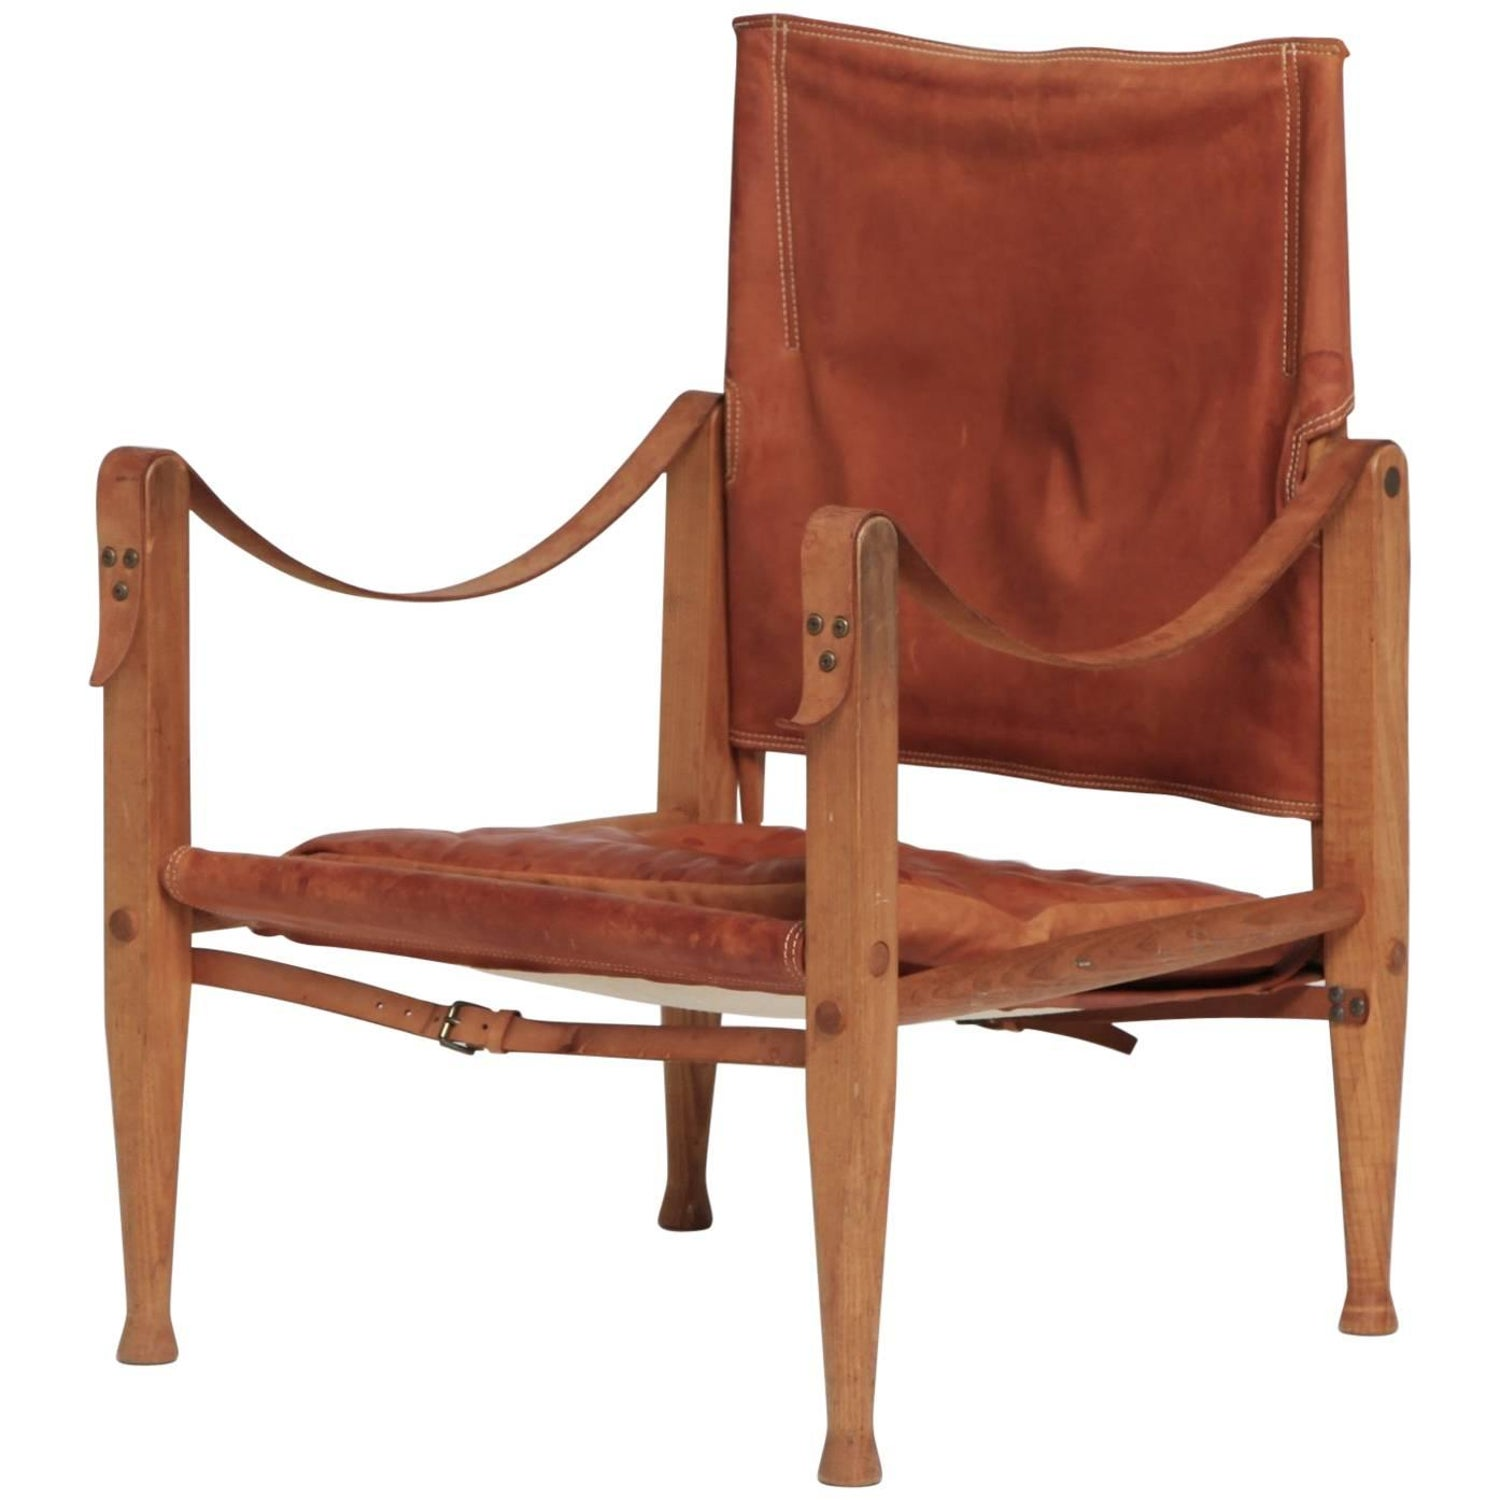 This pair of large burmese arm chairs is no longer available - Kaare Klint Safari Chair In Patinated Tan Leather Rud Rasmussen Denmark 1960s